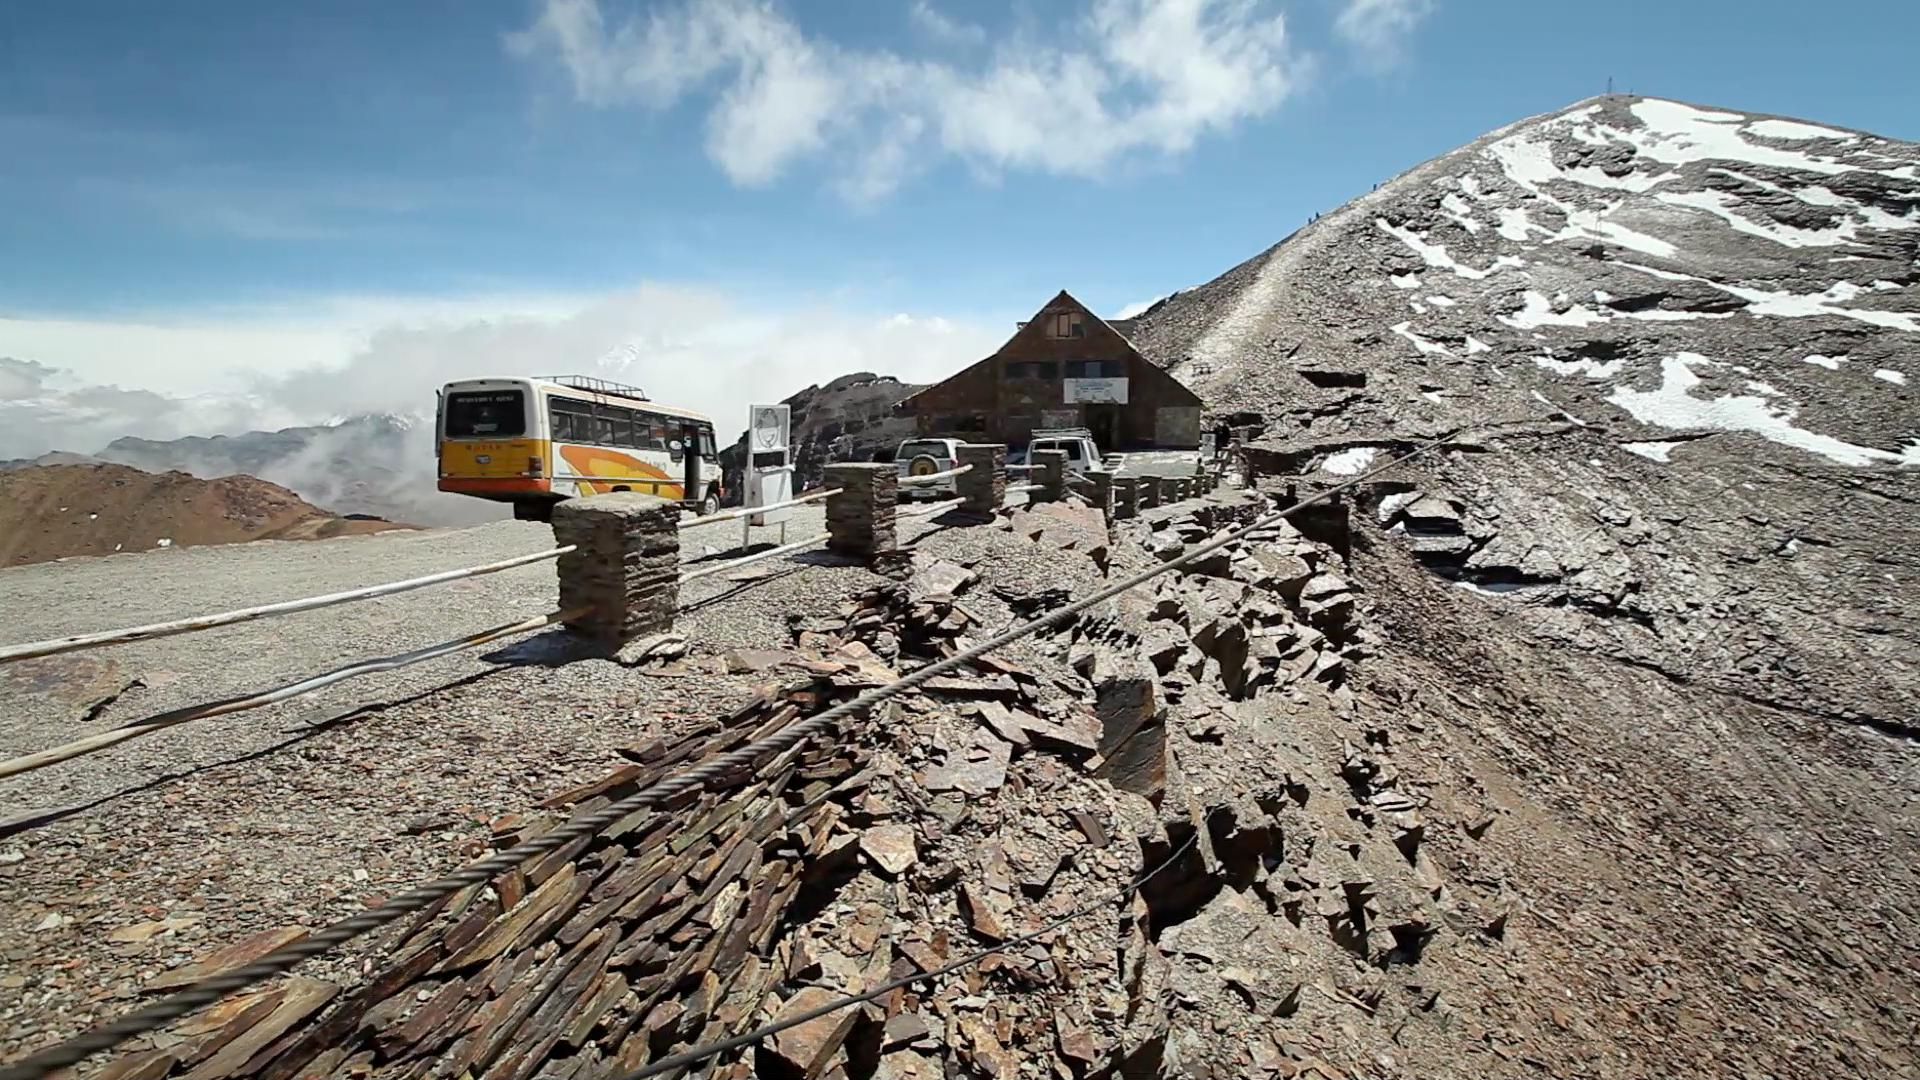 The former ski resort at Chacaltaya mountain, outside of La Paz. The glacier has melted away, 2012. Video Still: Stephan Bachenheimer / World Bank.